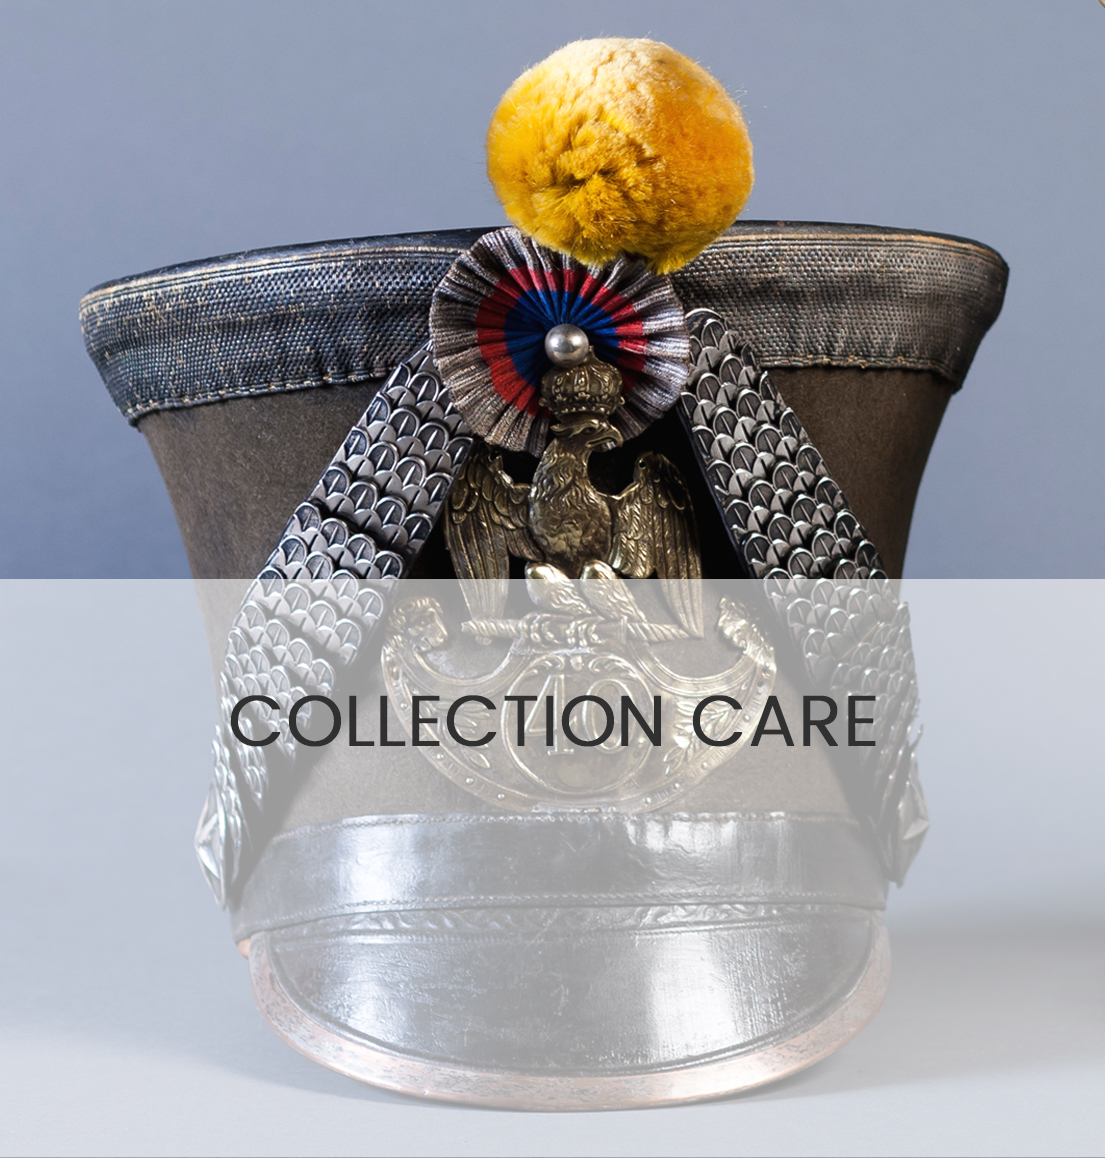 CollectionCare